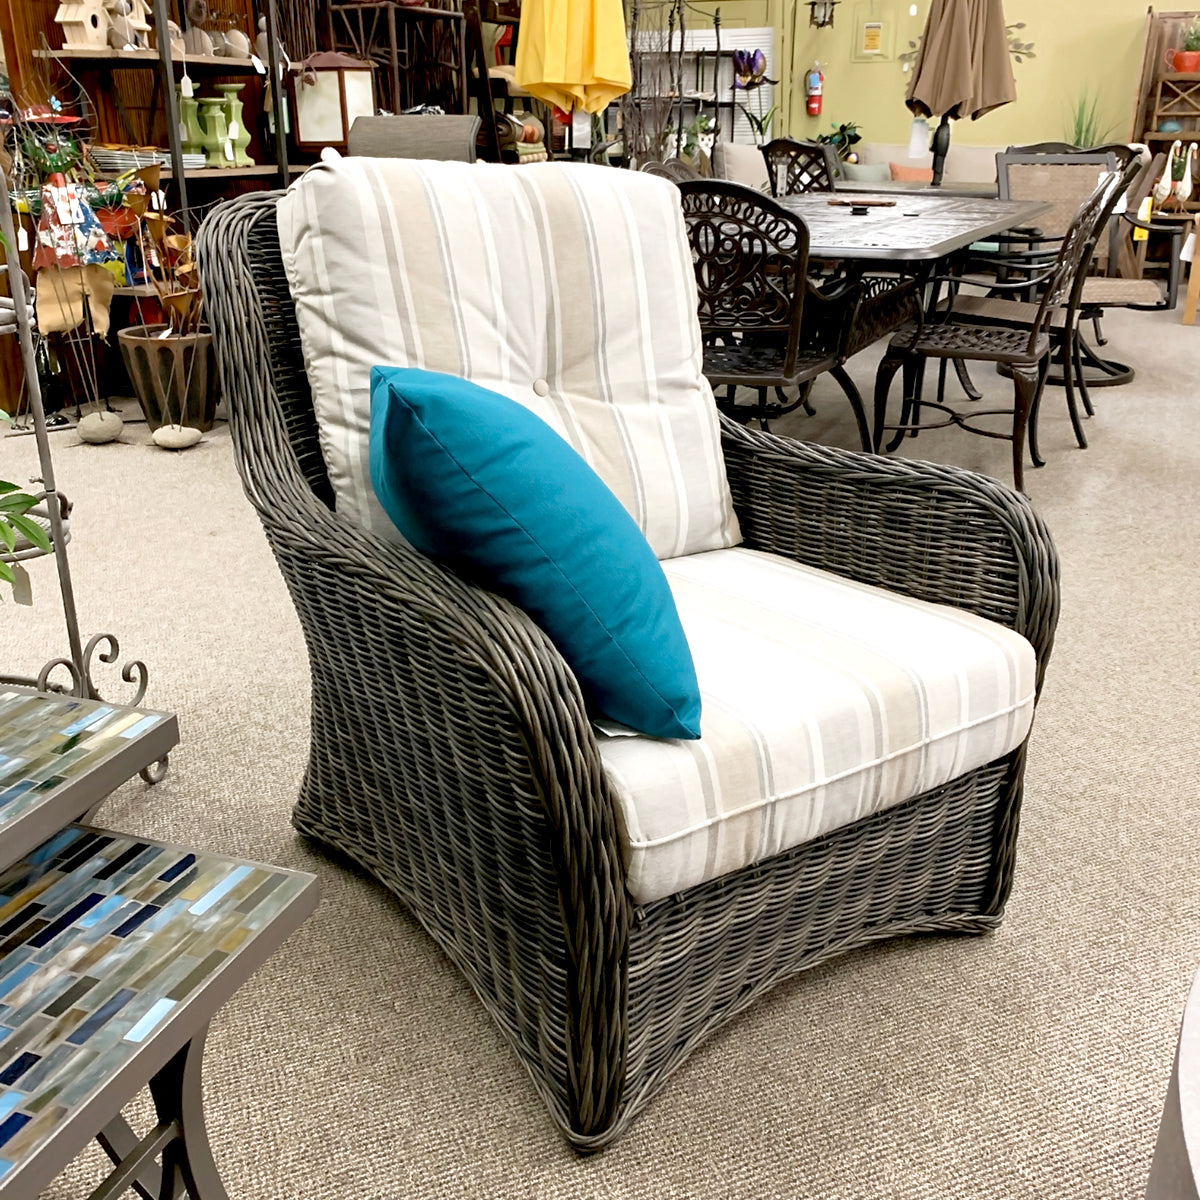 West Hampton Patio Lounge Chair is available at Jacobs Custom Living our Jacobs Custom Living Spokane Valley showroom.